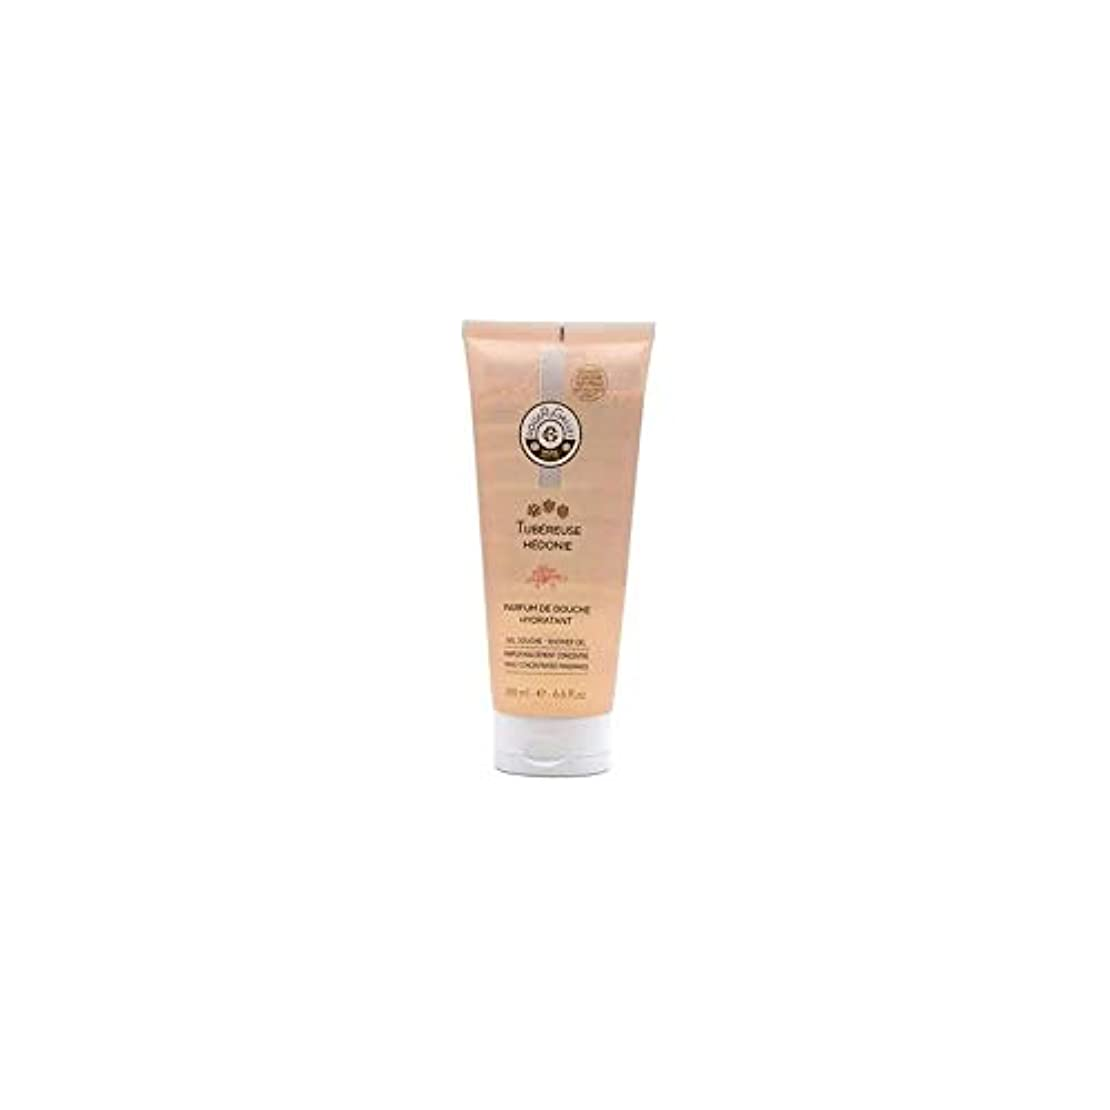 戦艦形許容[Roger & Gallet] ロジャー&GalletのTubereuse Hedonieシャワージェル200Ml - Roger & Gallet Tubereuse Hedonie Shower Gel 200ml...